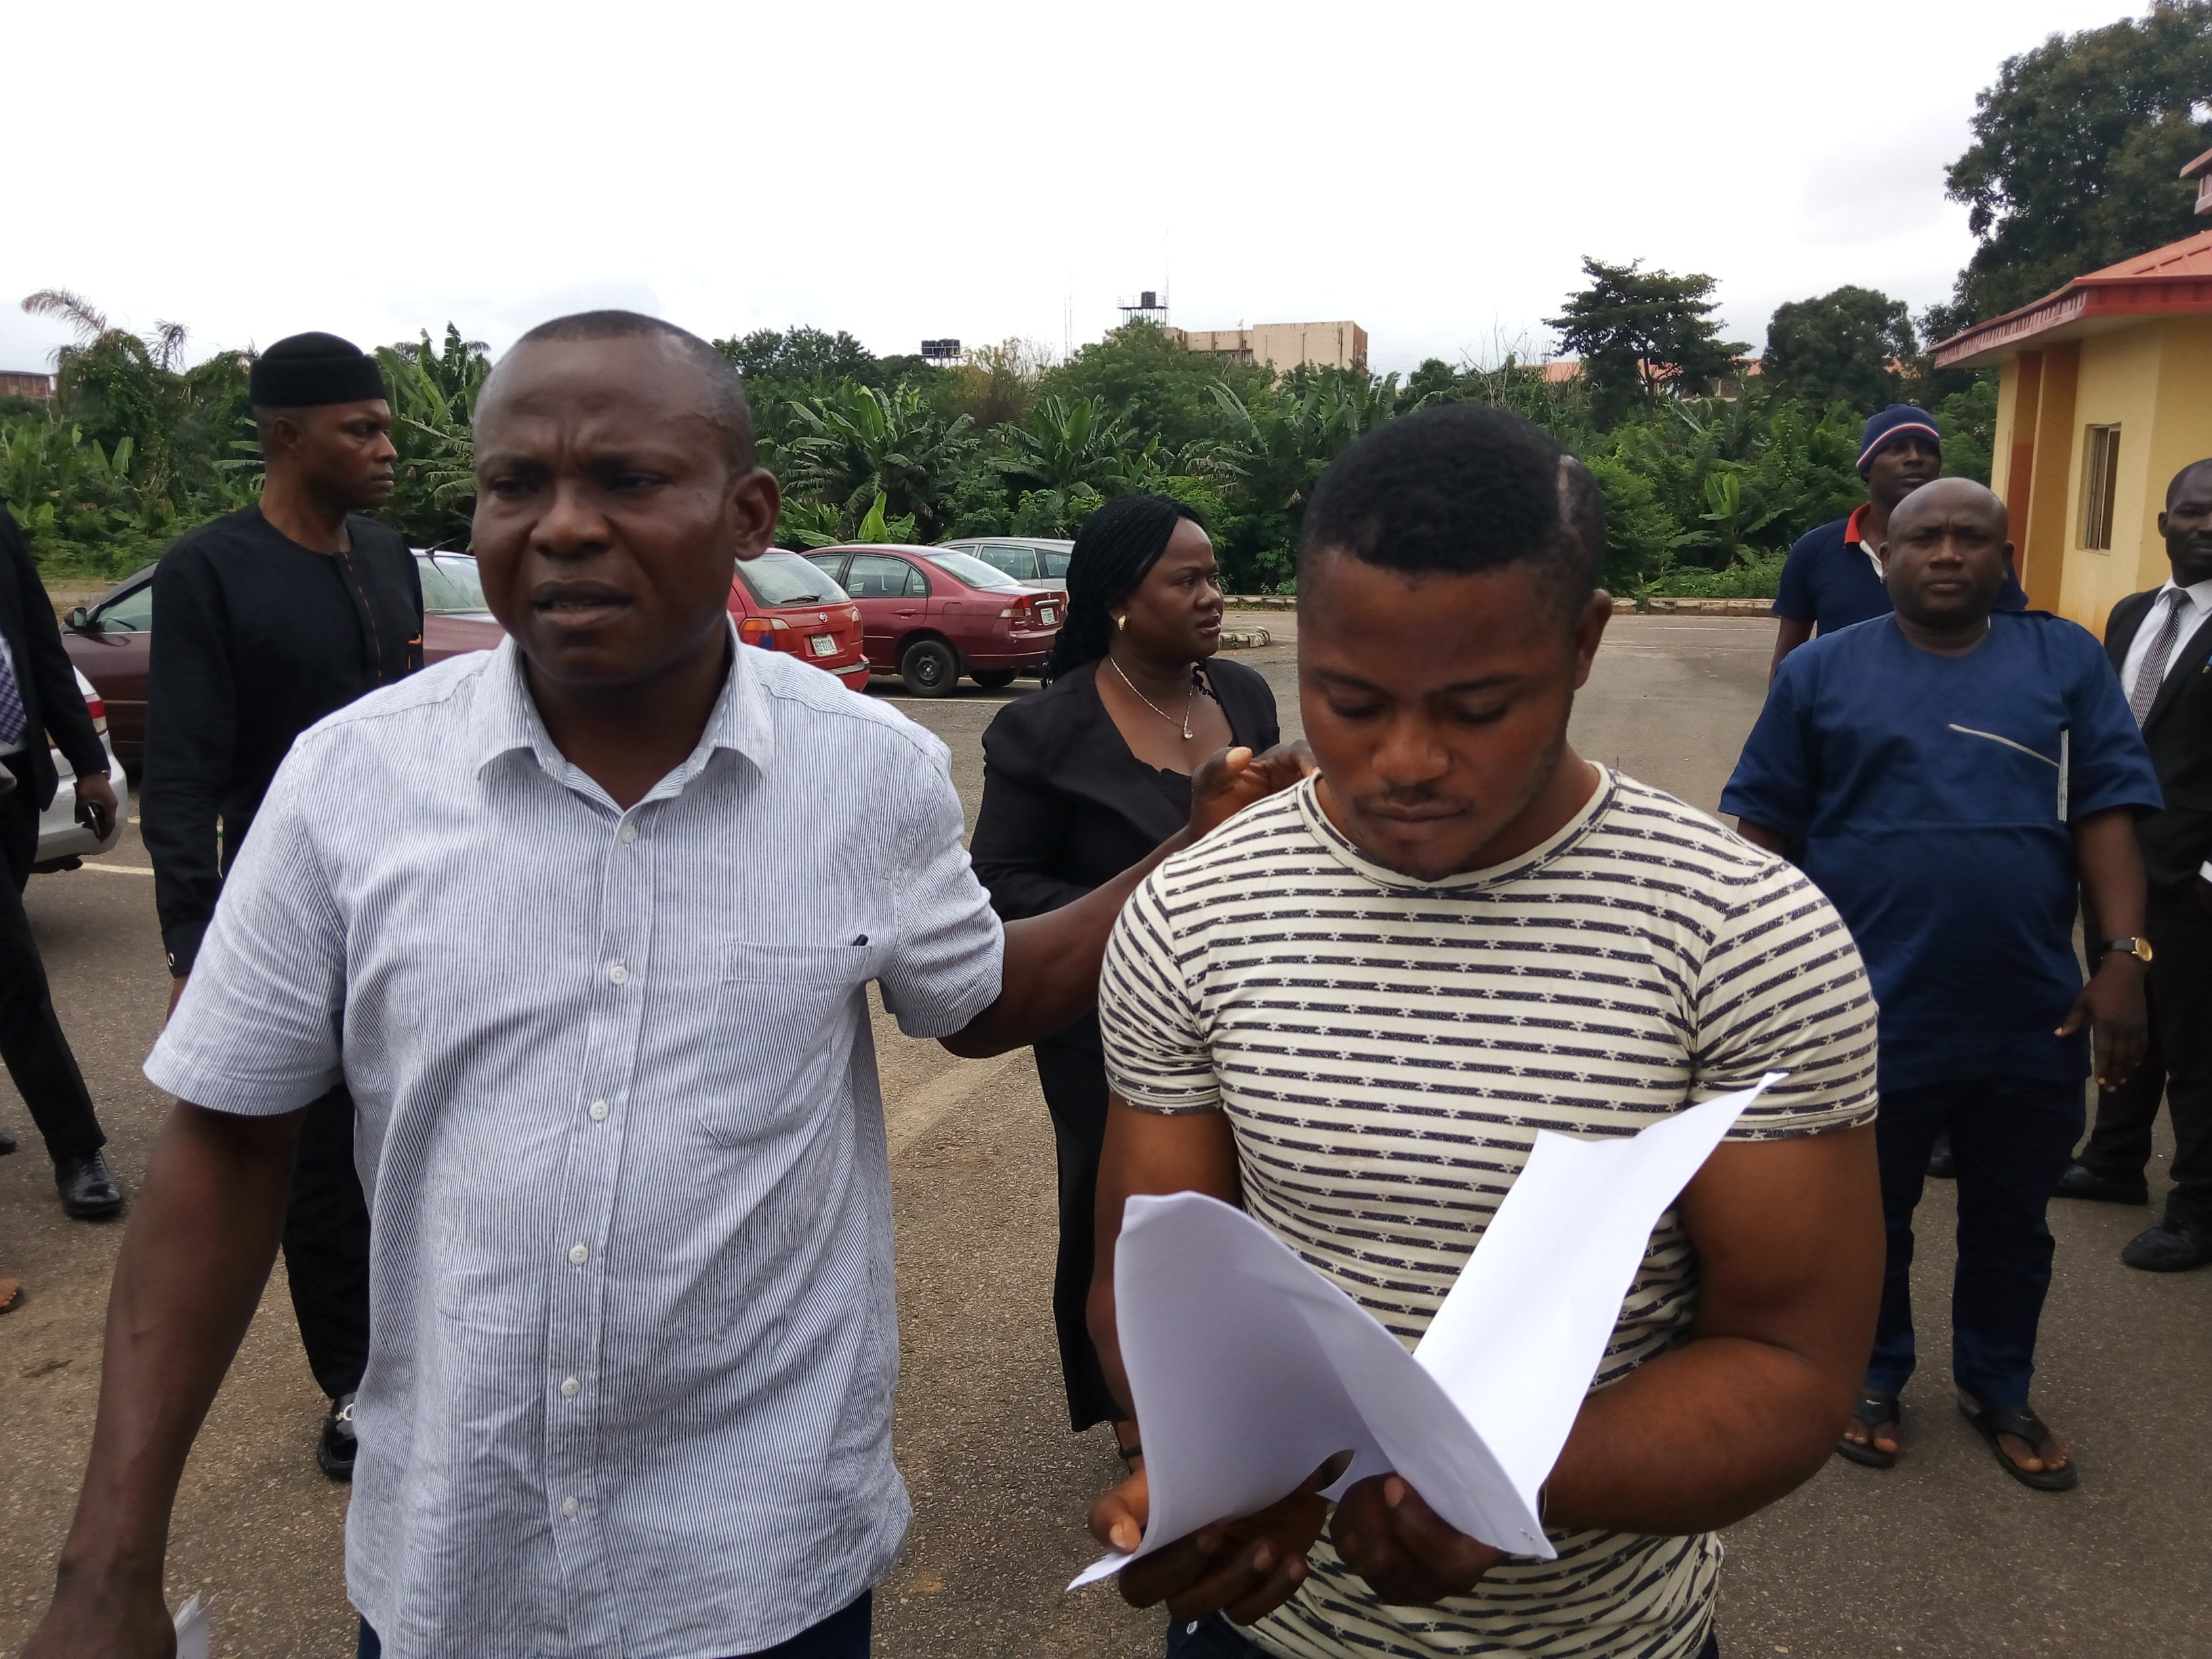 IMG 20190814 092807 0 - Soldier Accused Of Raping University Student Arraigned In Court (Photos)